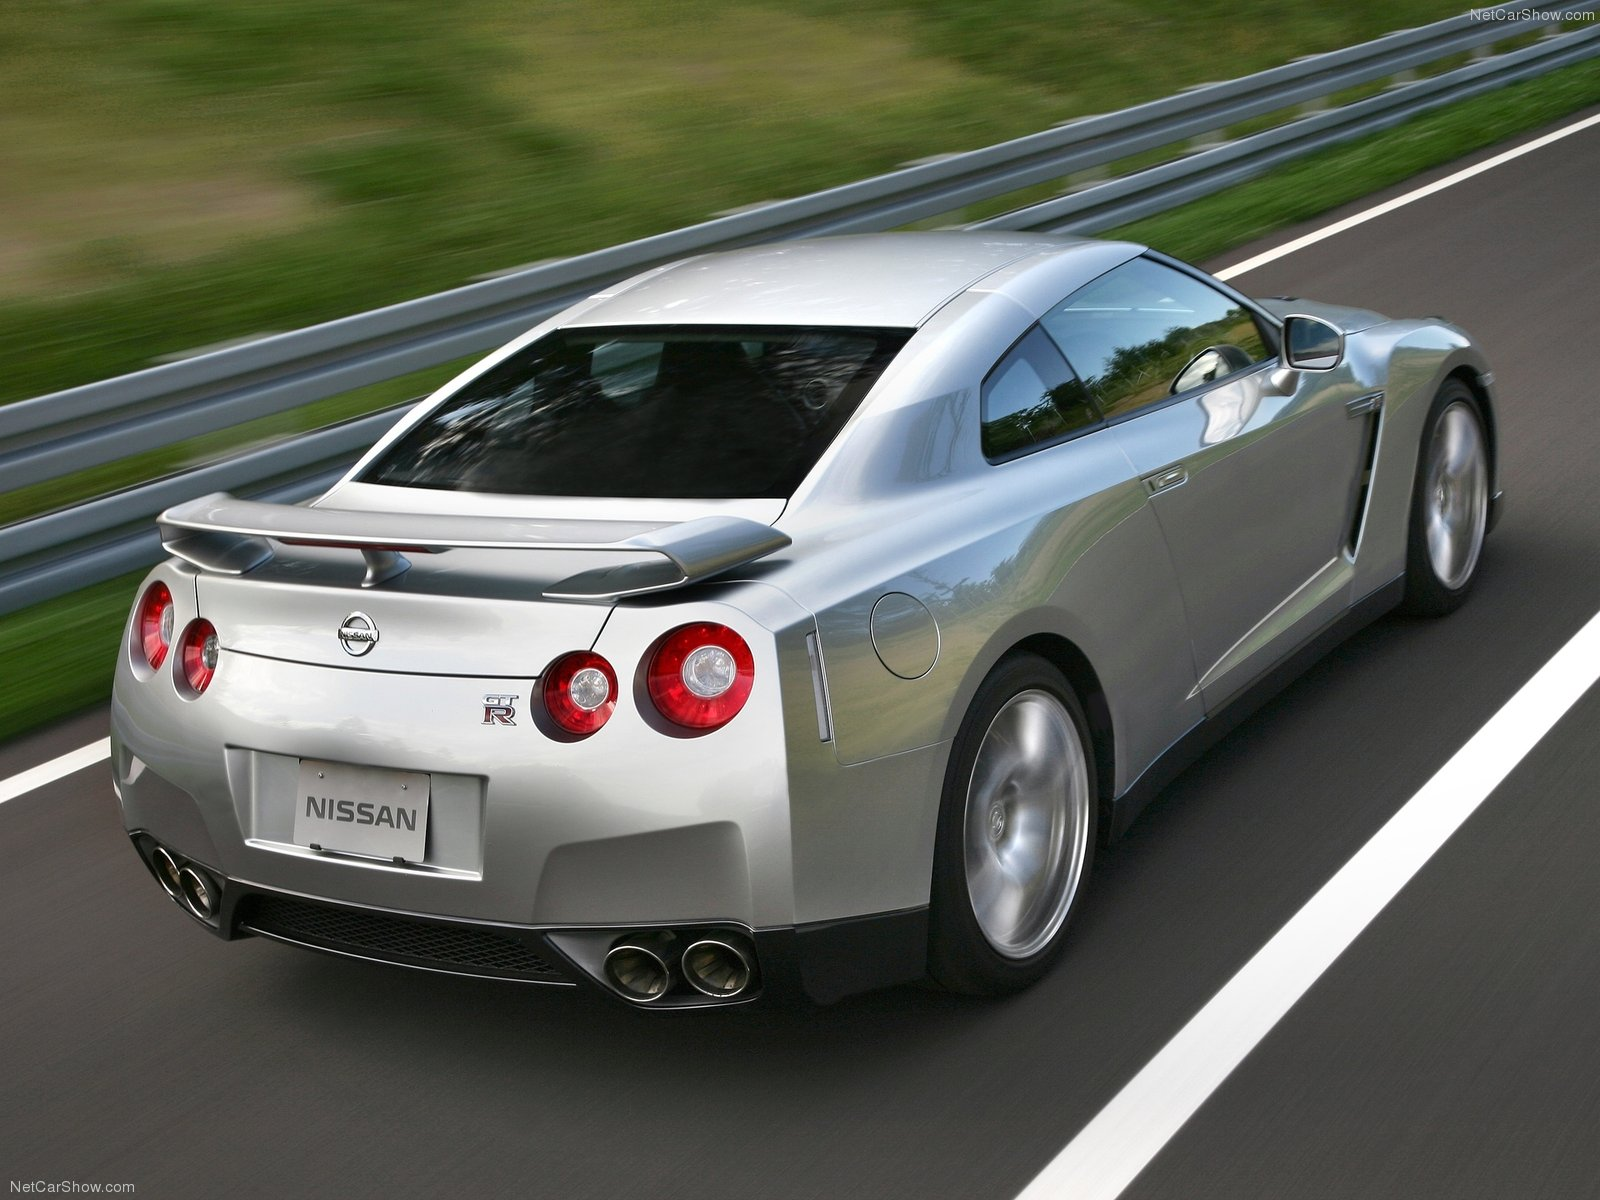 3dtuning of nissan gt-r coupe 2010 3dtuning - unique on-line